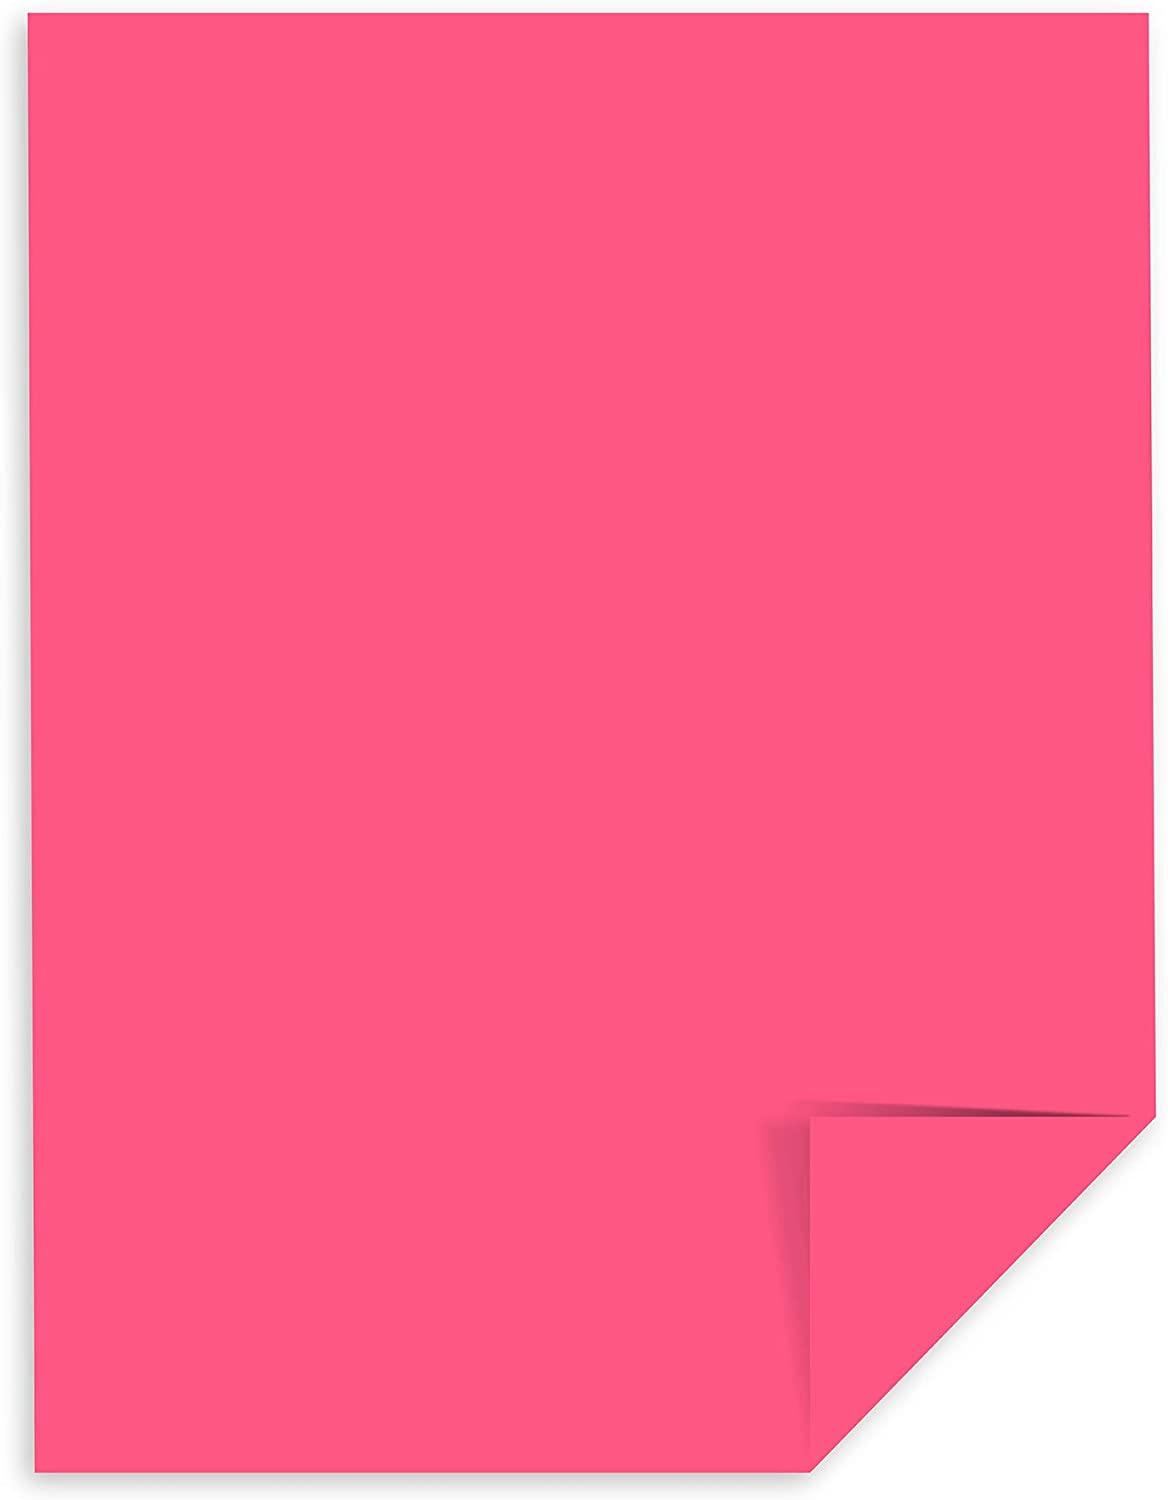 WAU22119 Neenah Paper Astrobrights Colored Paper